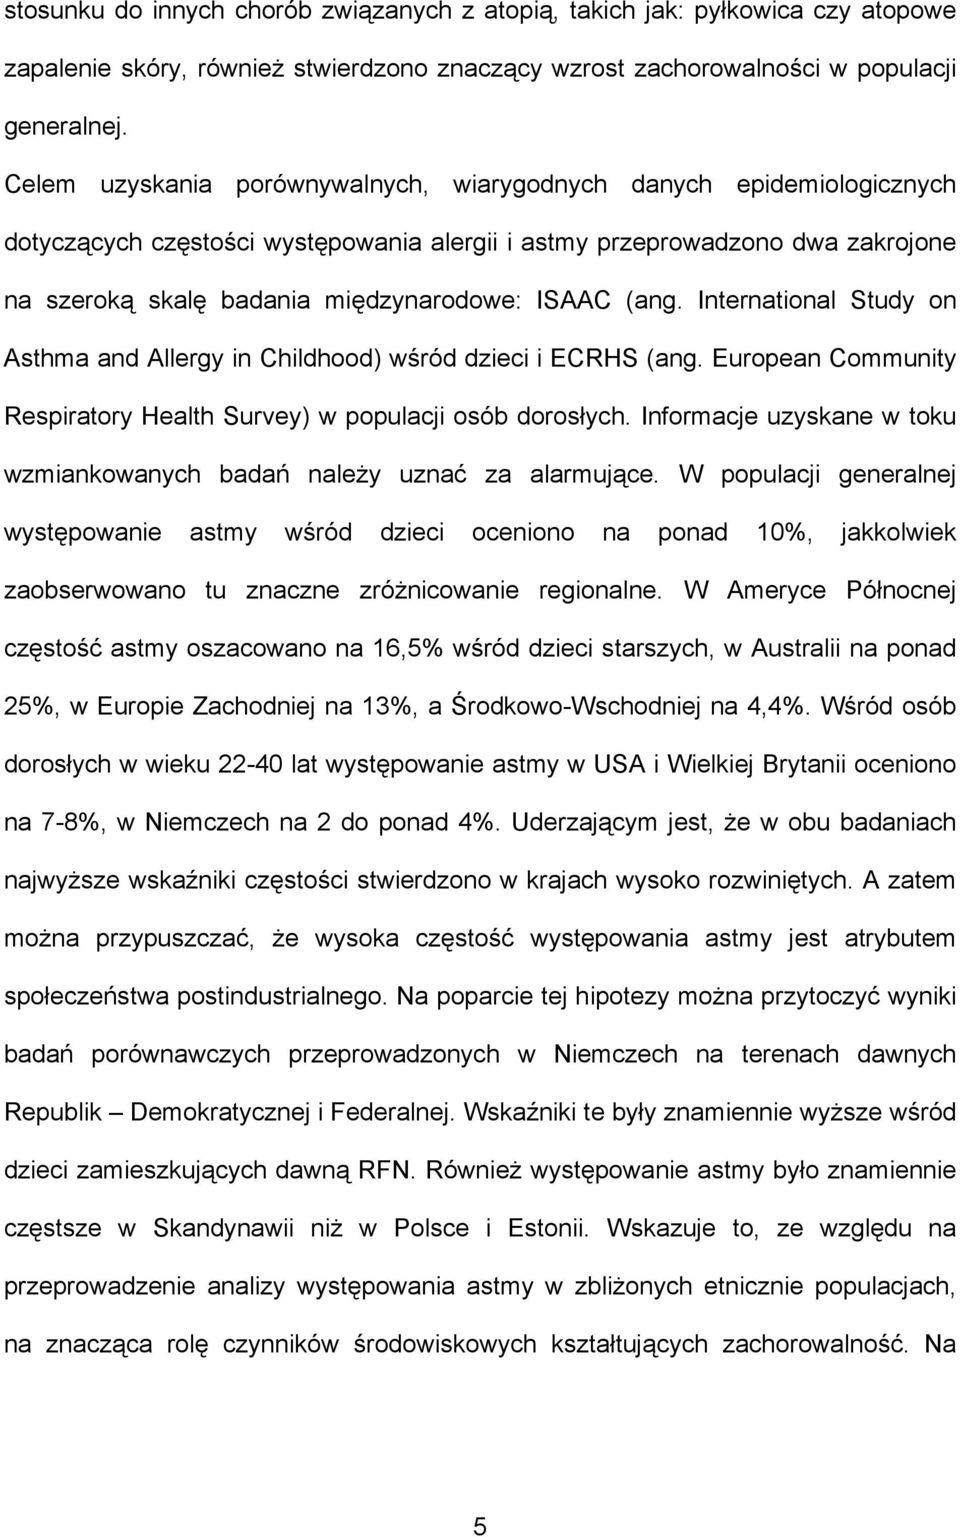 (ang. International Study on Asthma and Allergy in Childhood) wśród dzieci i ECRHS (ang. European Community Respiratory Health Survey) w populacji osób dorosłych.